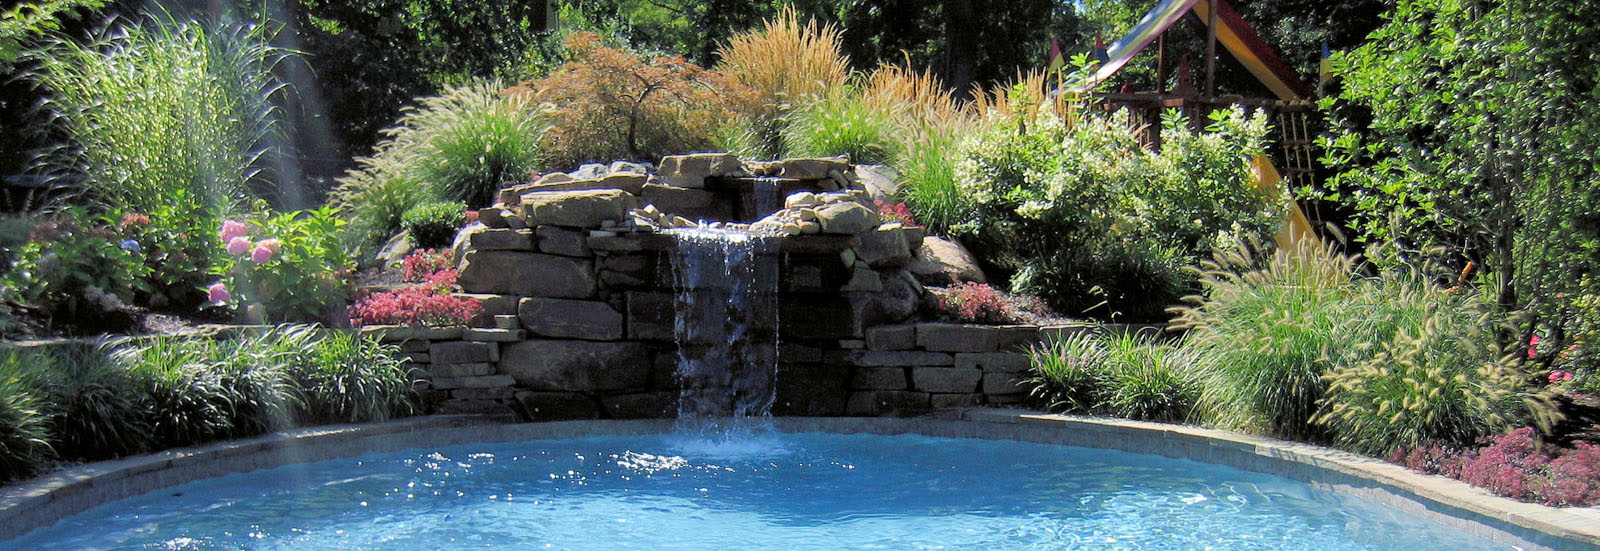 Natural Stone Pool Waterfall - North Jersey